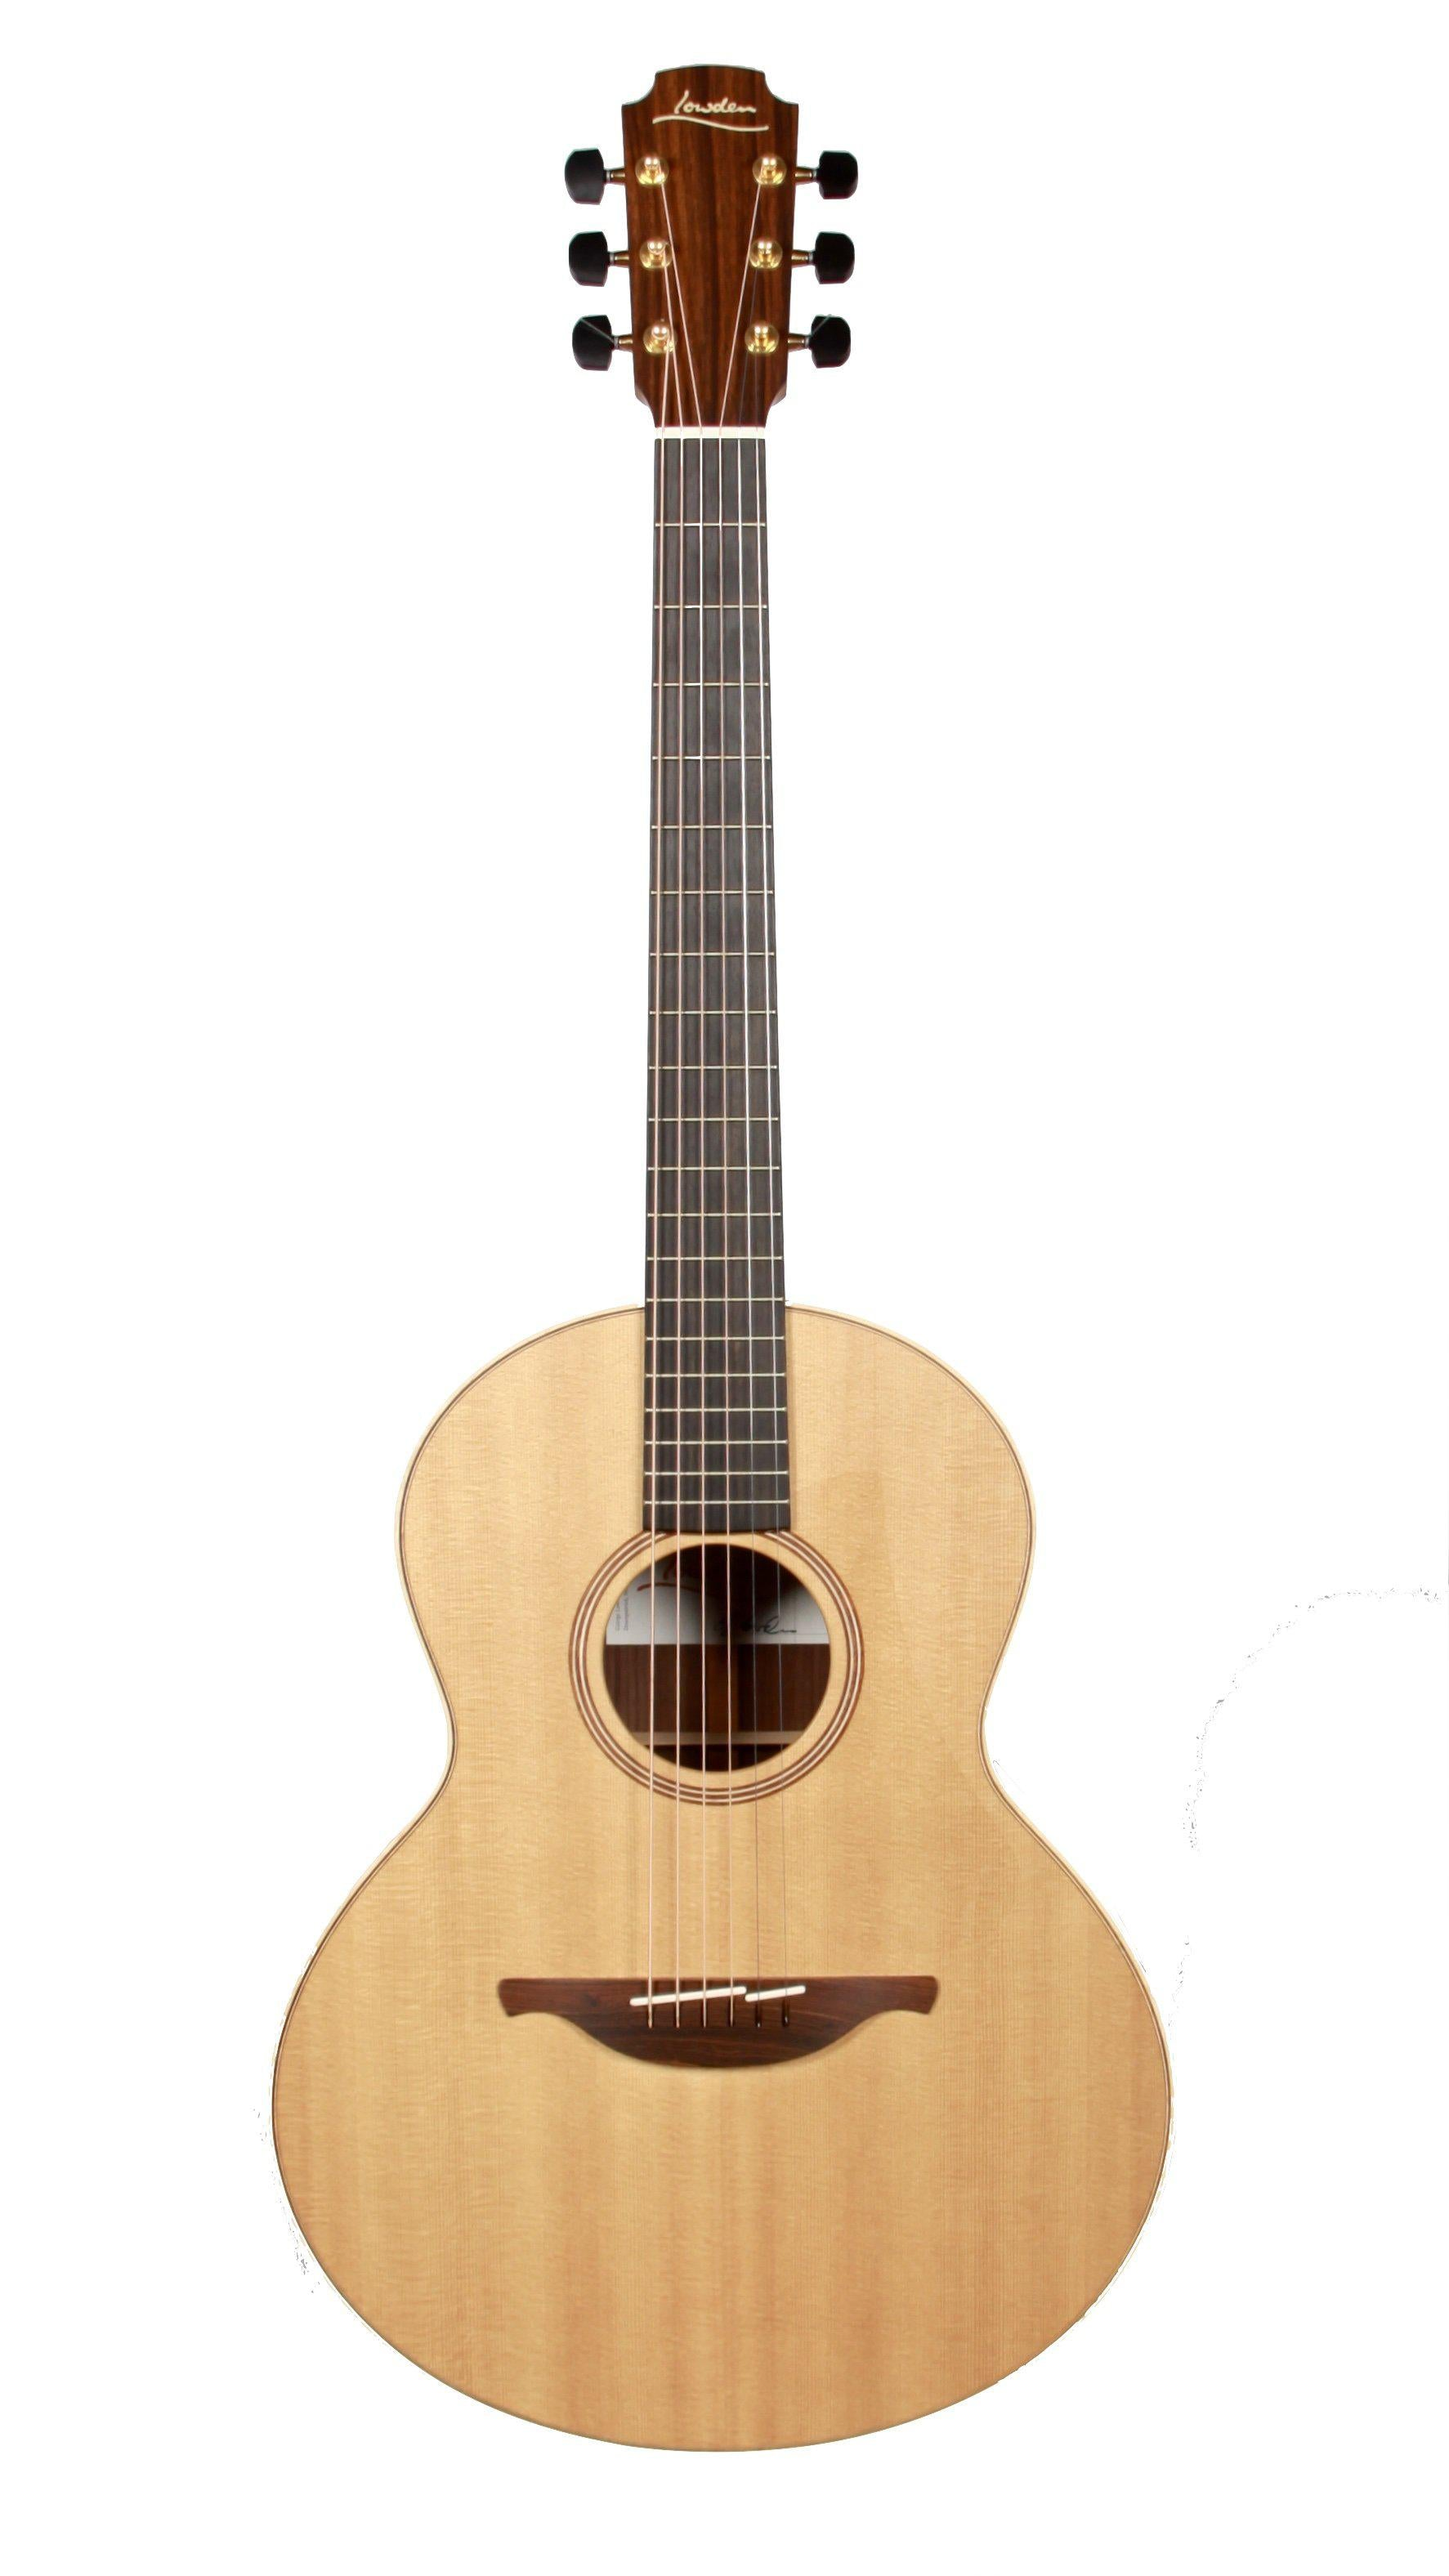 Lowden S32 Sitka Spruce over Indian Rosewood - Lowden Guitars - Heartbreaker Guitars